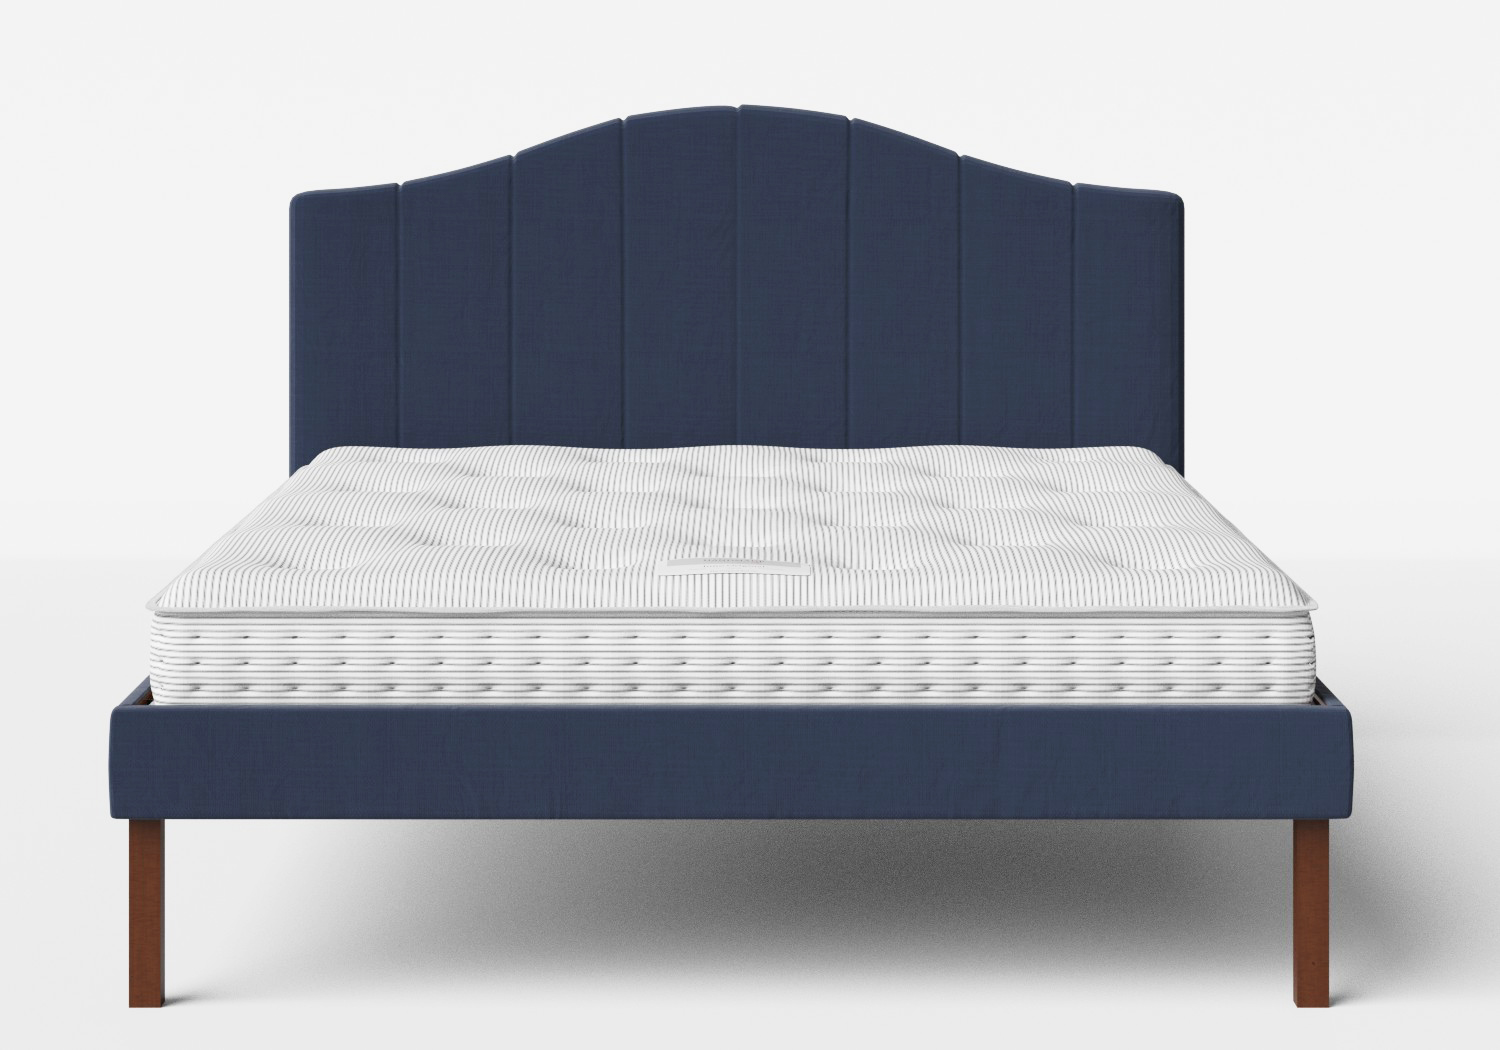 Yoshida Upholstered Bed with Navy fabric shown with Juno 1 mattress